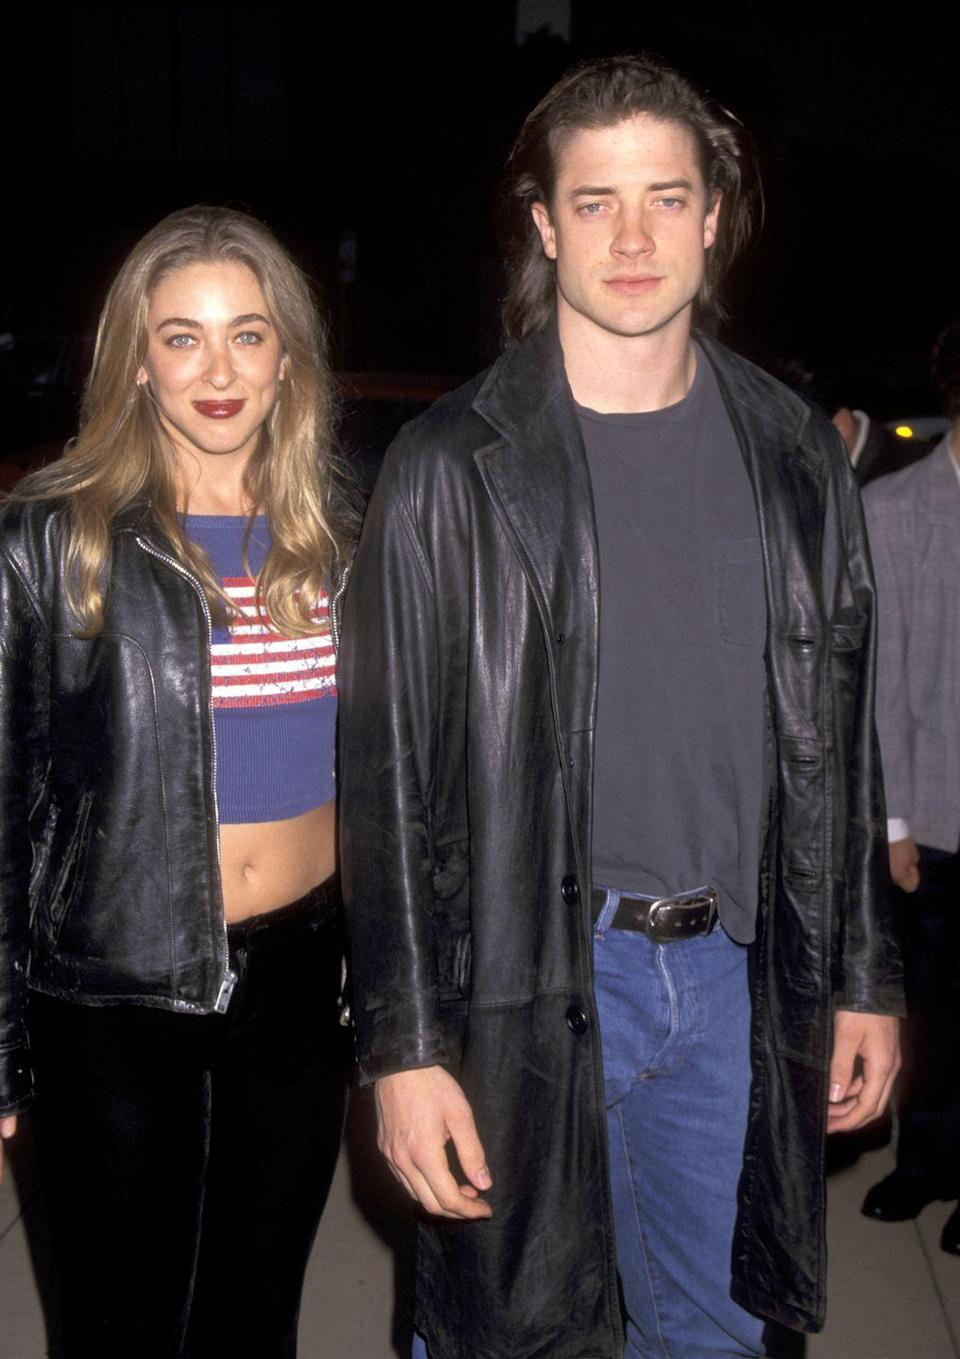 <p>Brendan Fraser grew his hair long to play George in <em>George of the Jungle </em>in 1995, but kept the iconic look for a few years after. Today, the actor opts for a short look instead. </p>